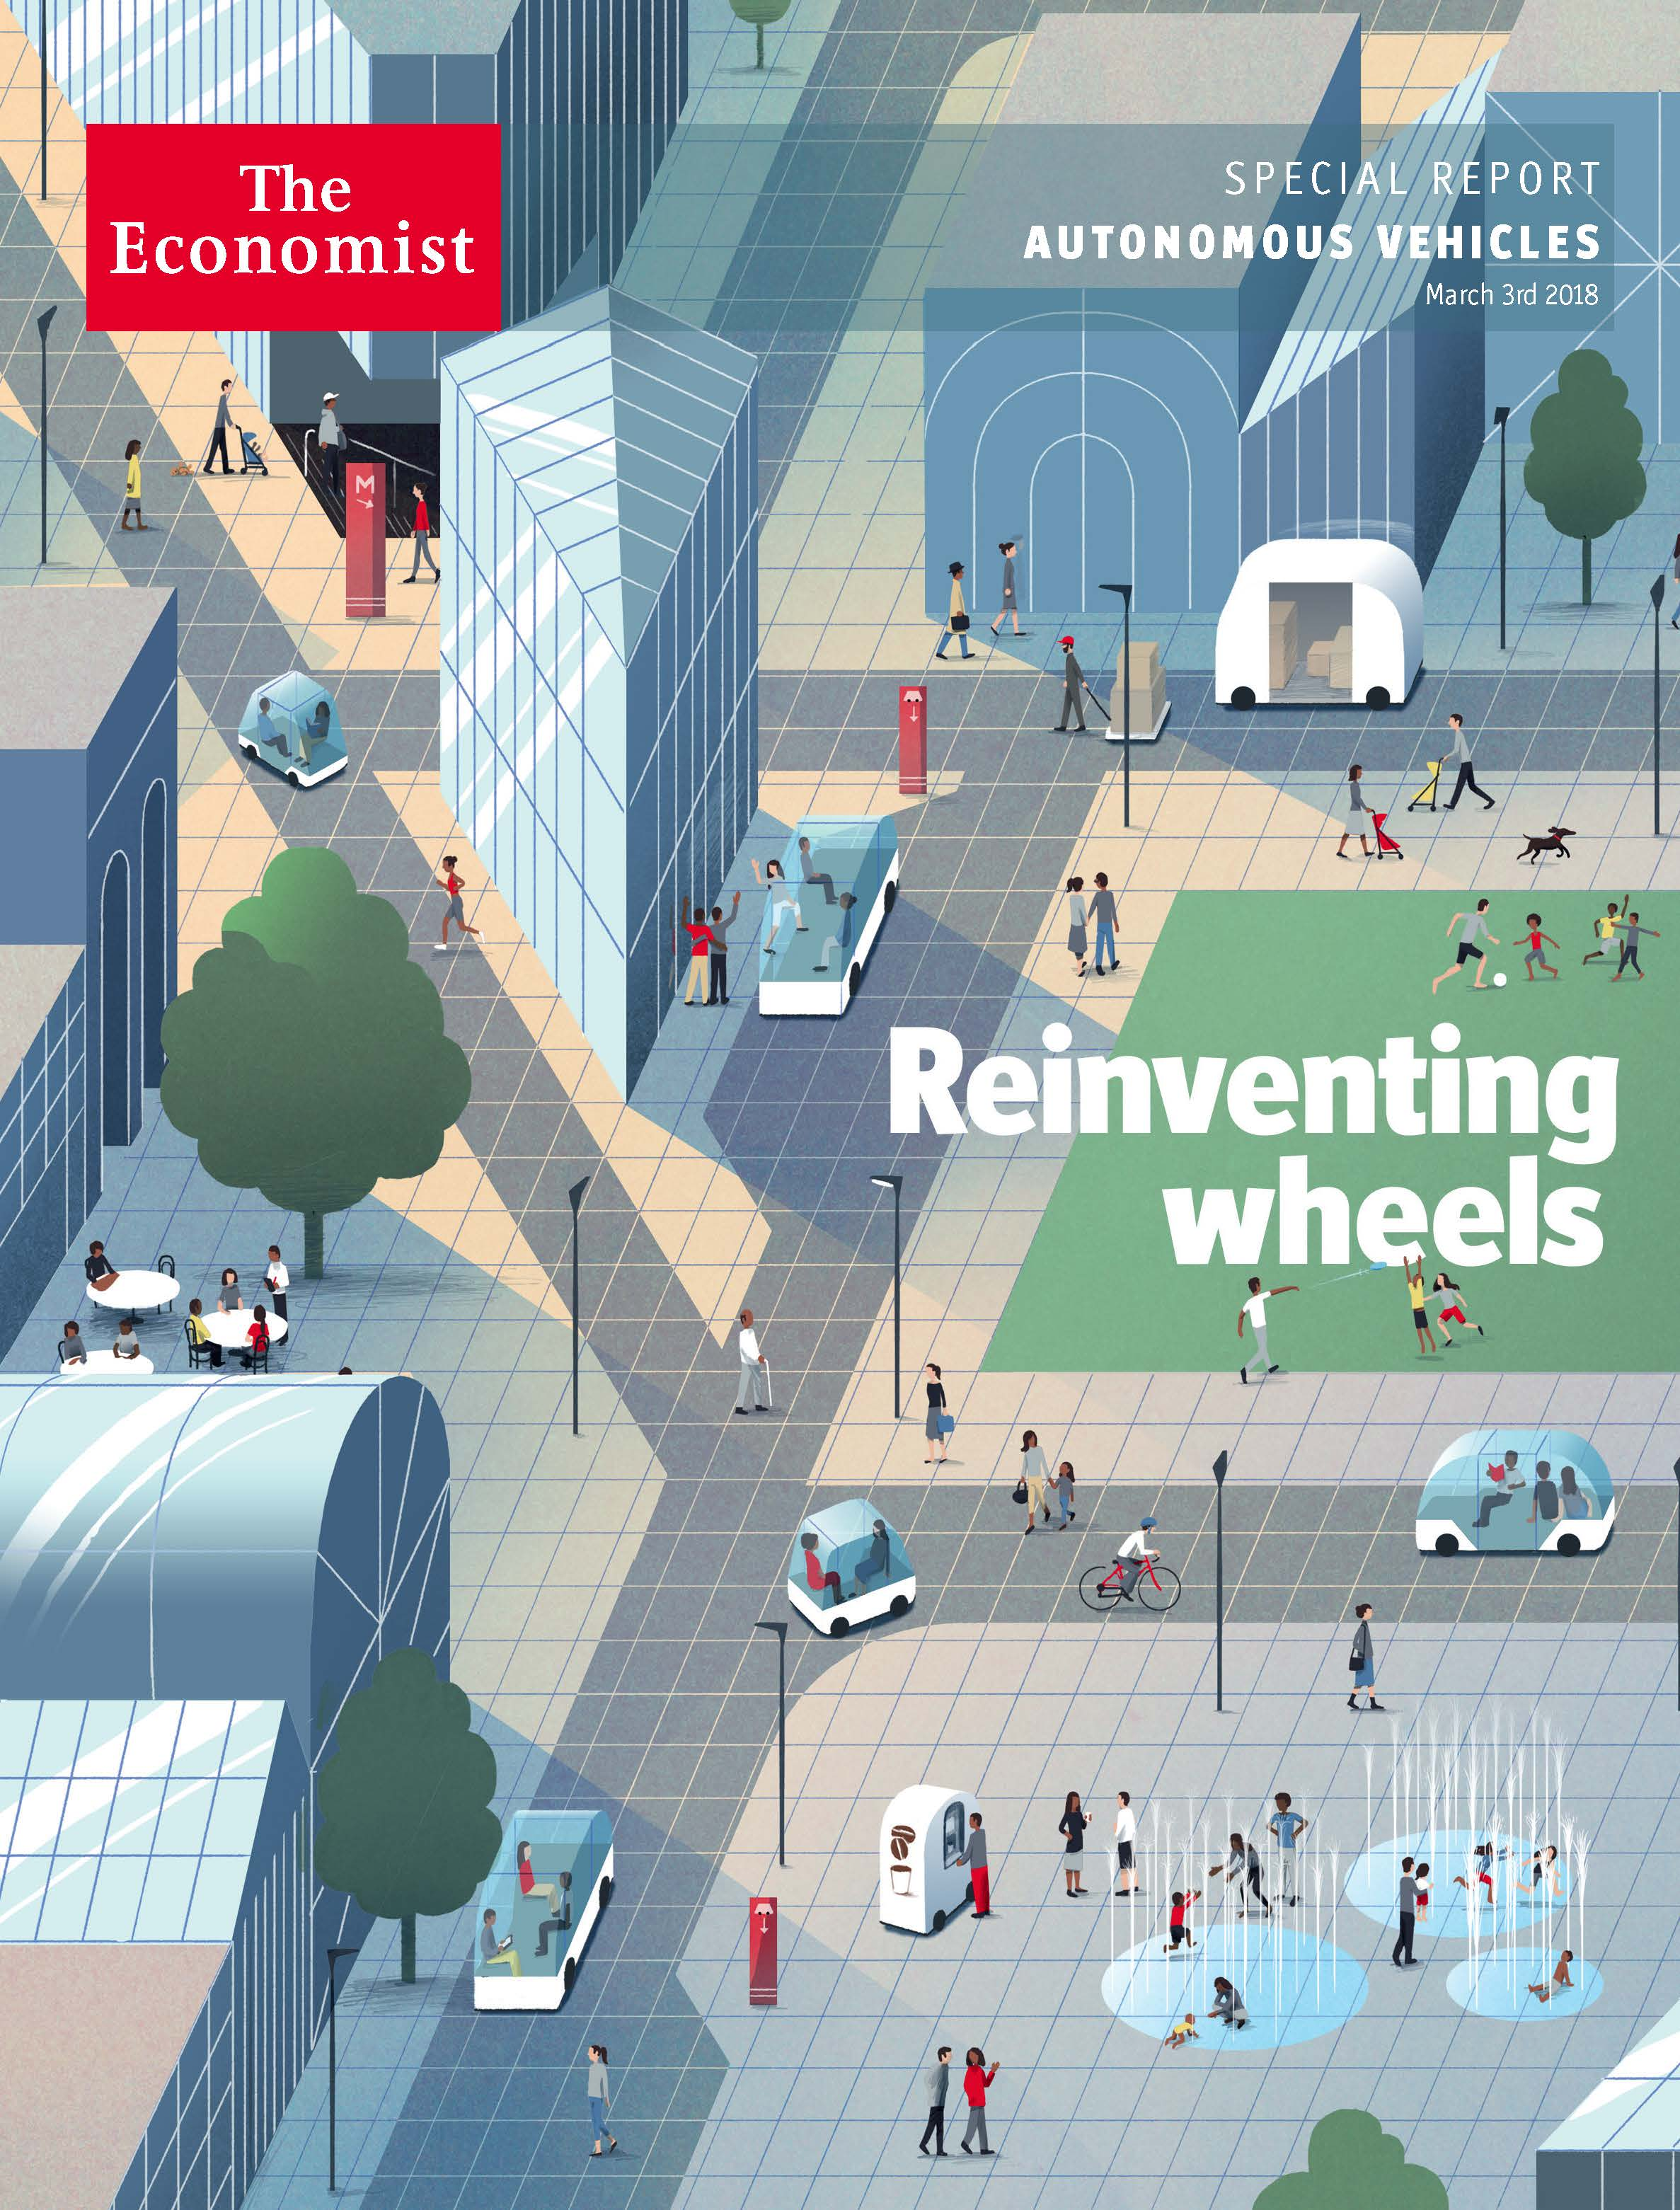 Special Report on Autonomous Vehicles